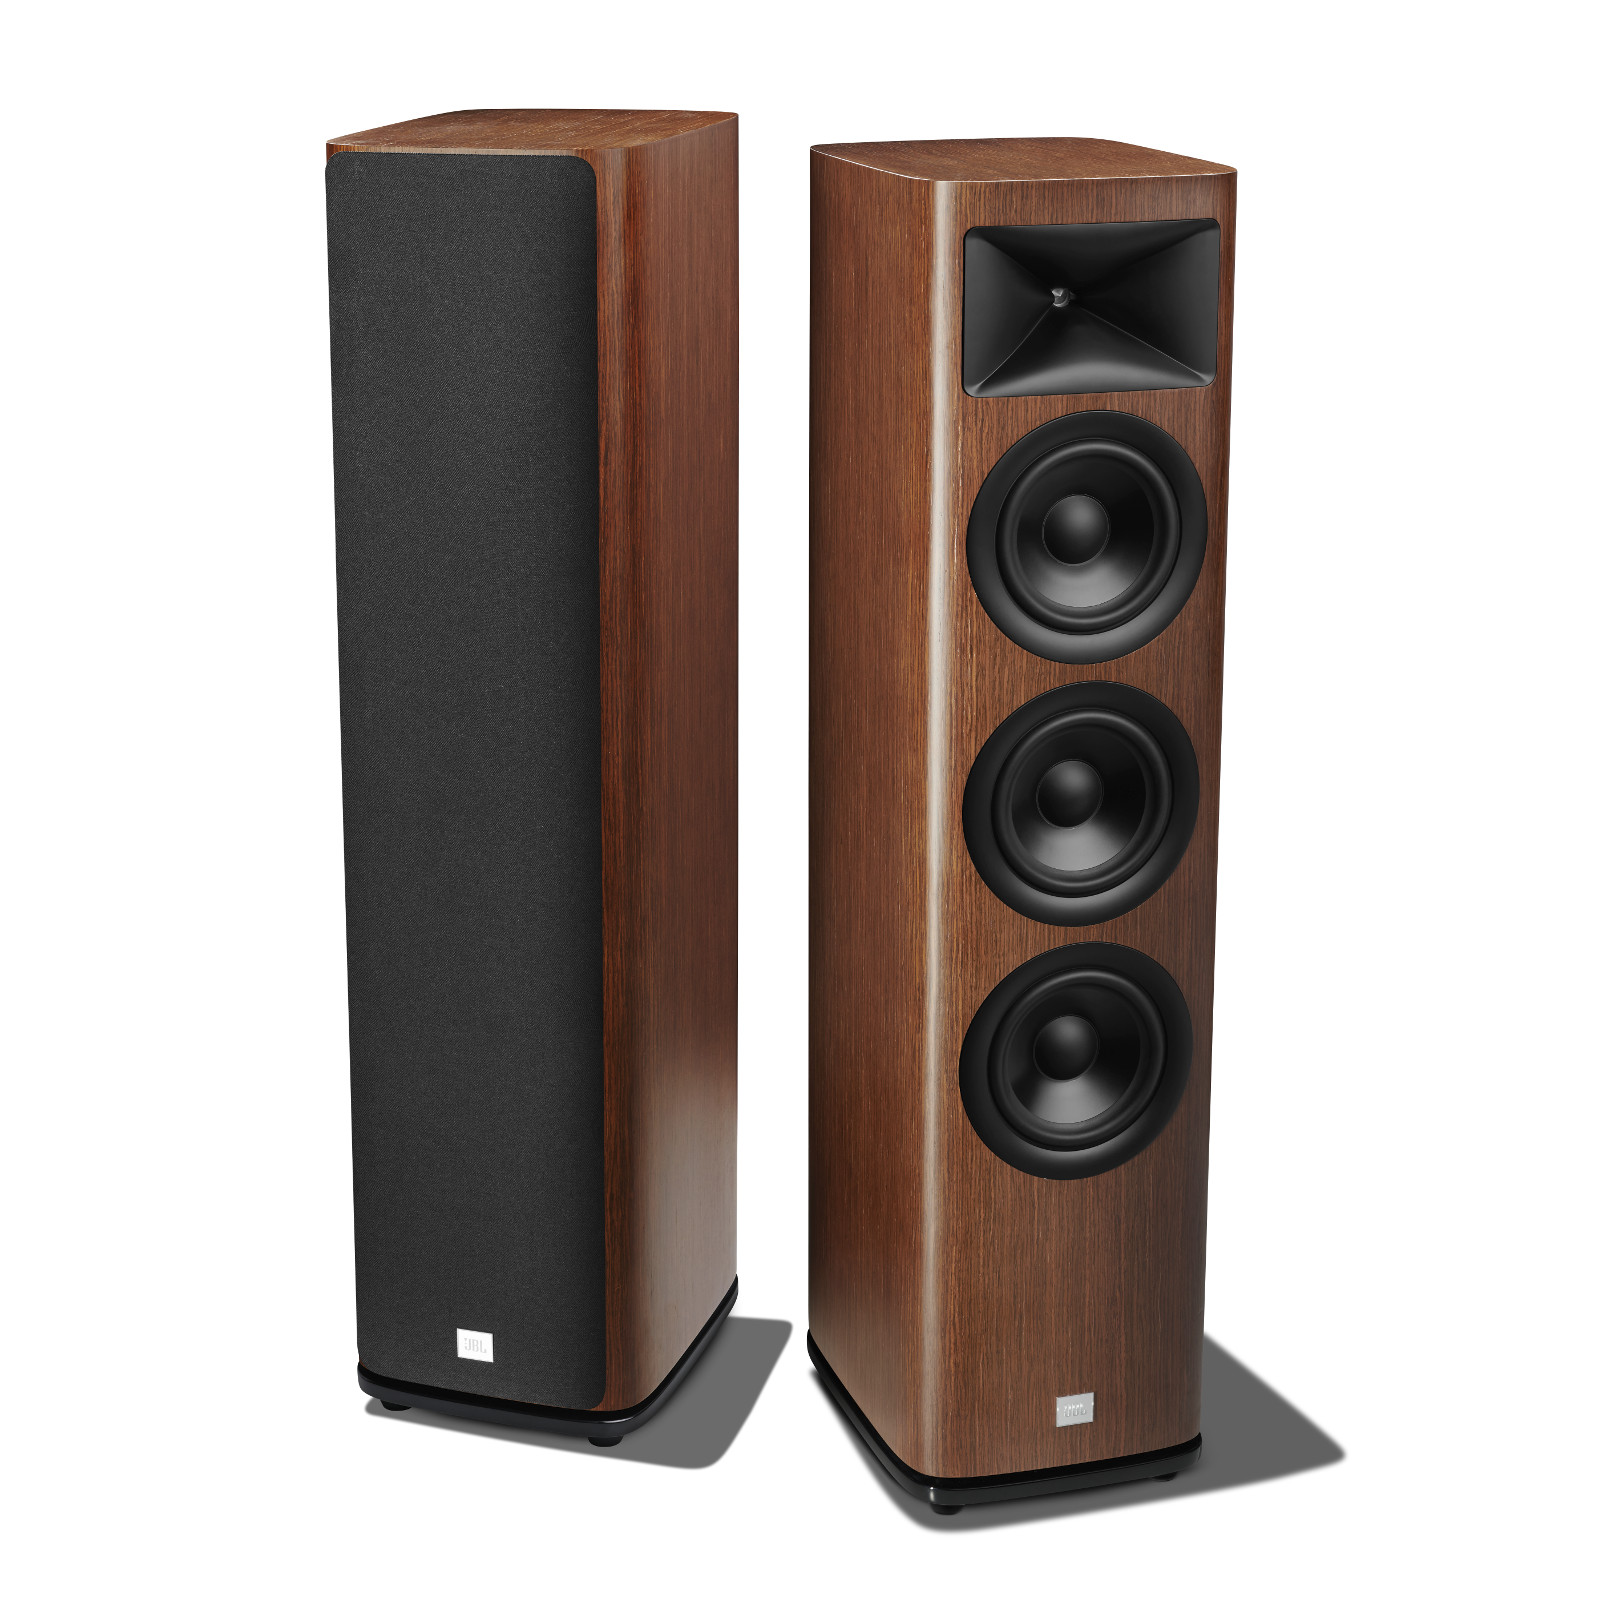 JBL HDI Series Speakers